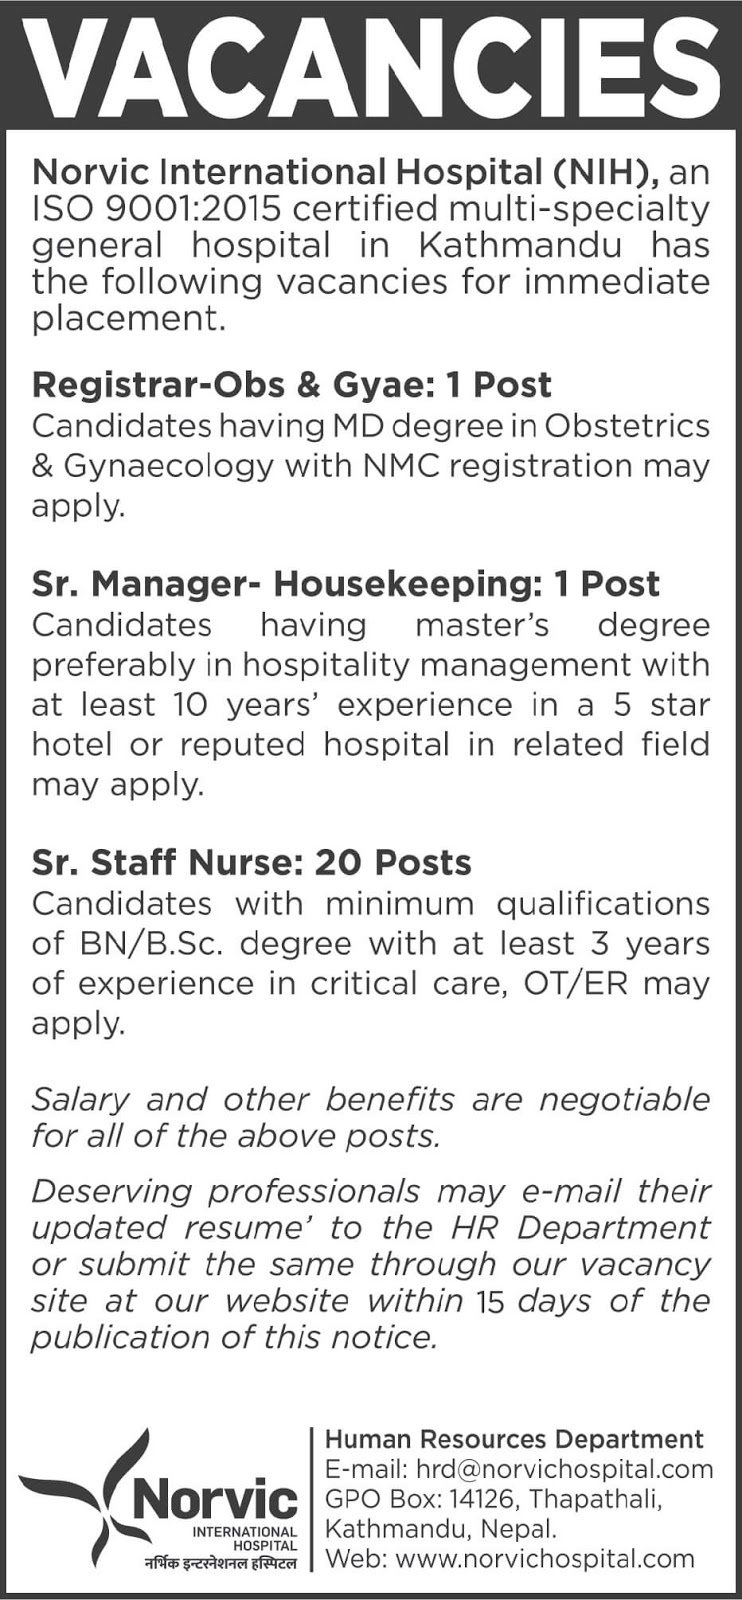 Norvic International Hospital Vacancies